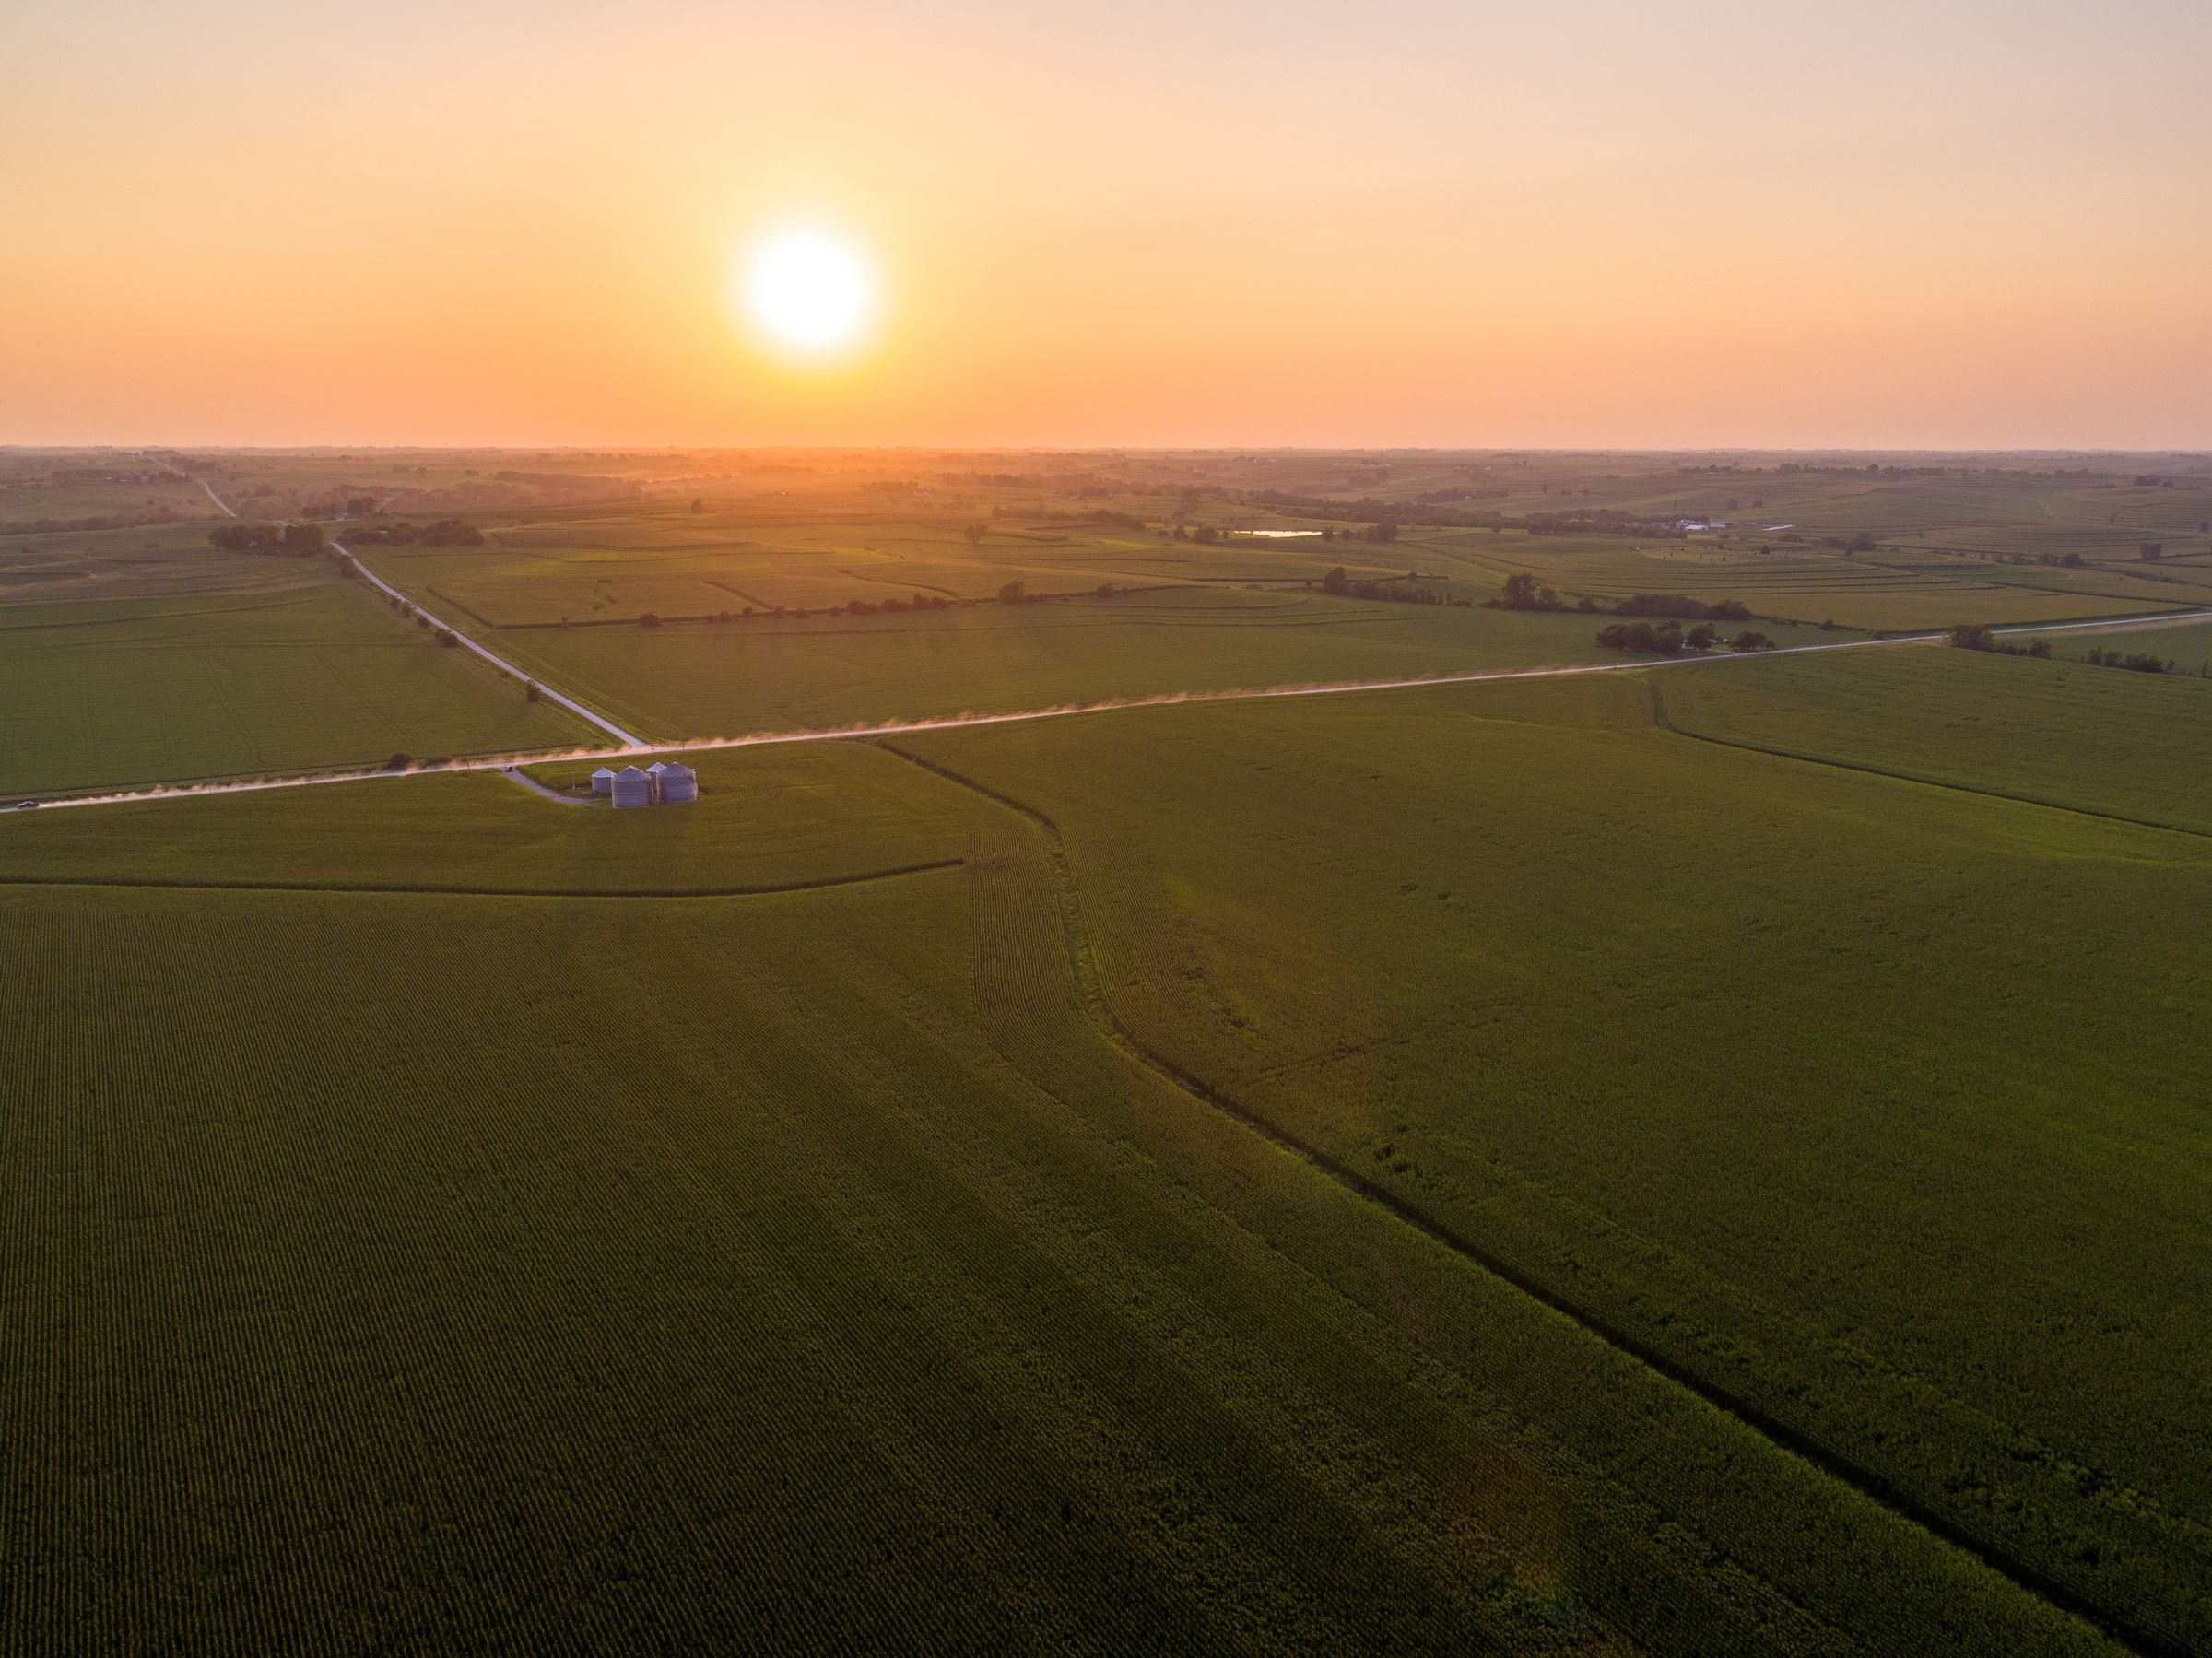 auctions-land-montgomery-county-iowa-703-acres-listing-number-15724-1-2021-09-07-151054.jpeg